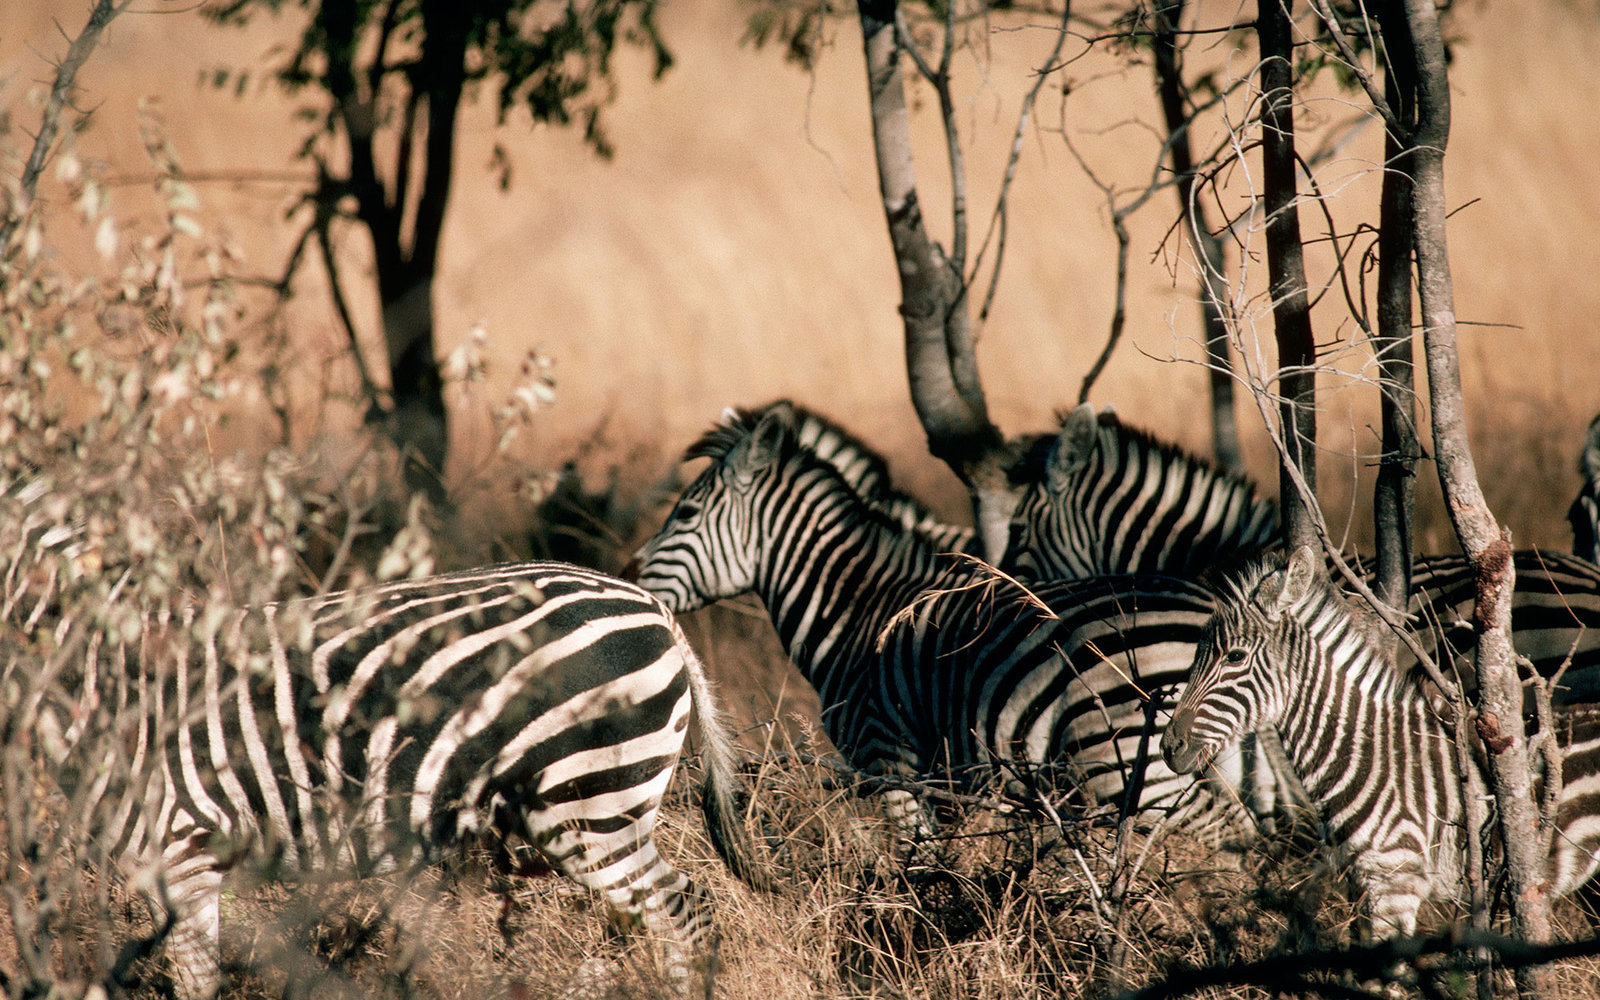 Zebras in Hwange National Park